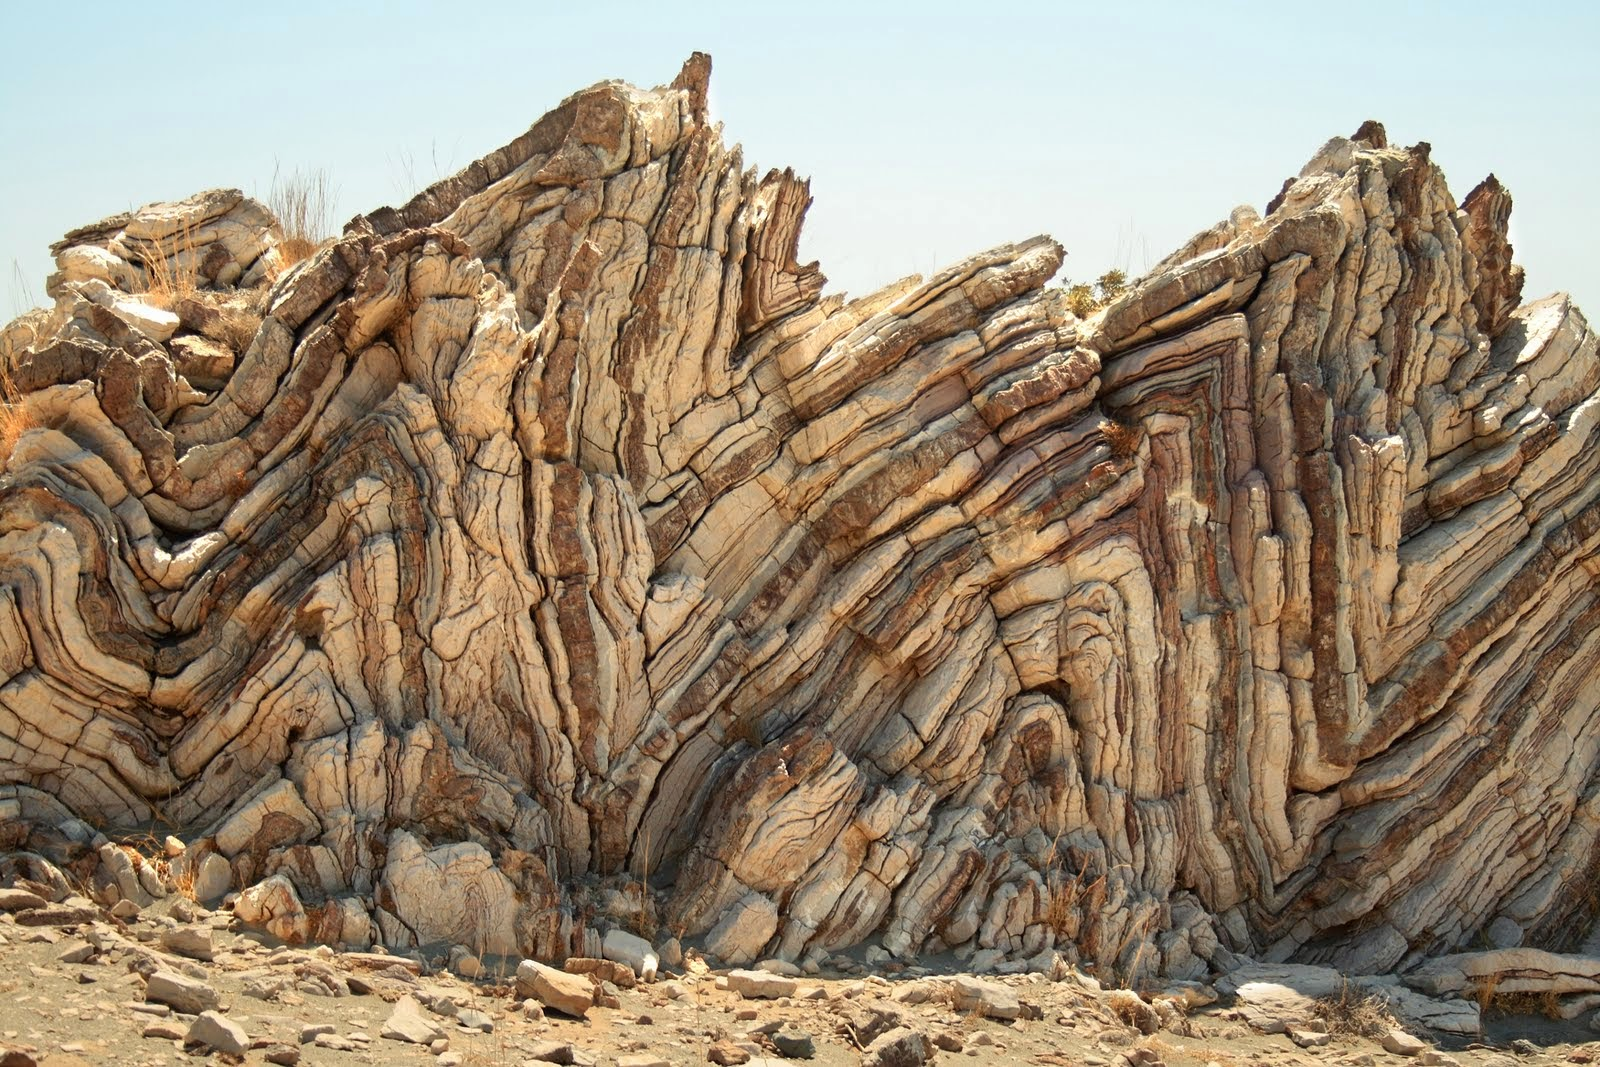 Amazing Folding Rocks at Agia Pavlos